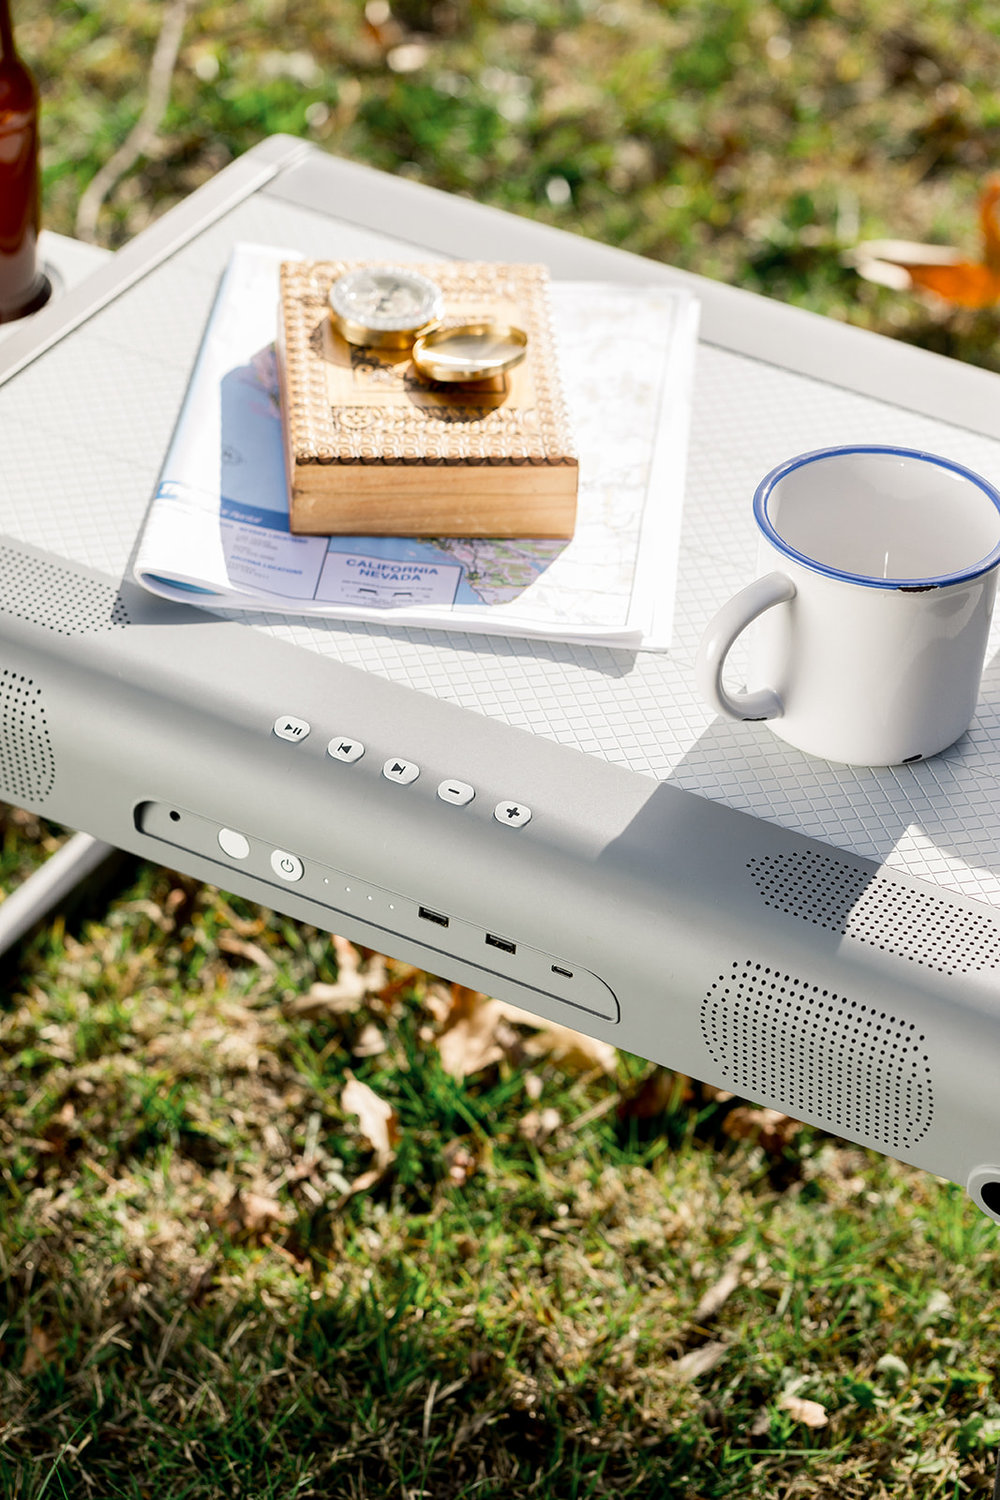 PorTable-Smart-Table-Product-Photos-189.jpg